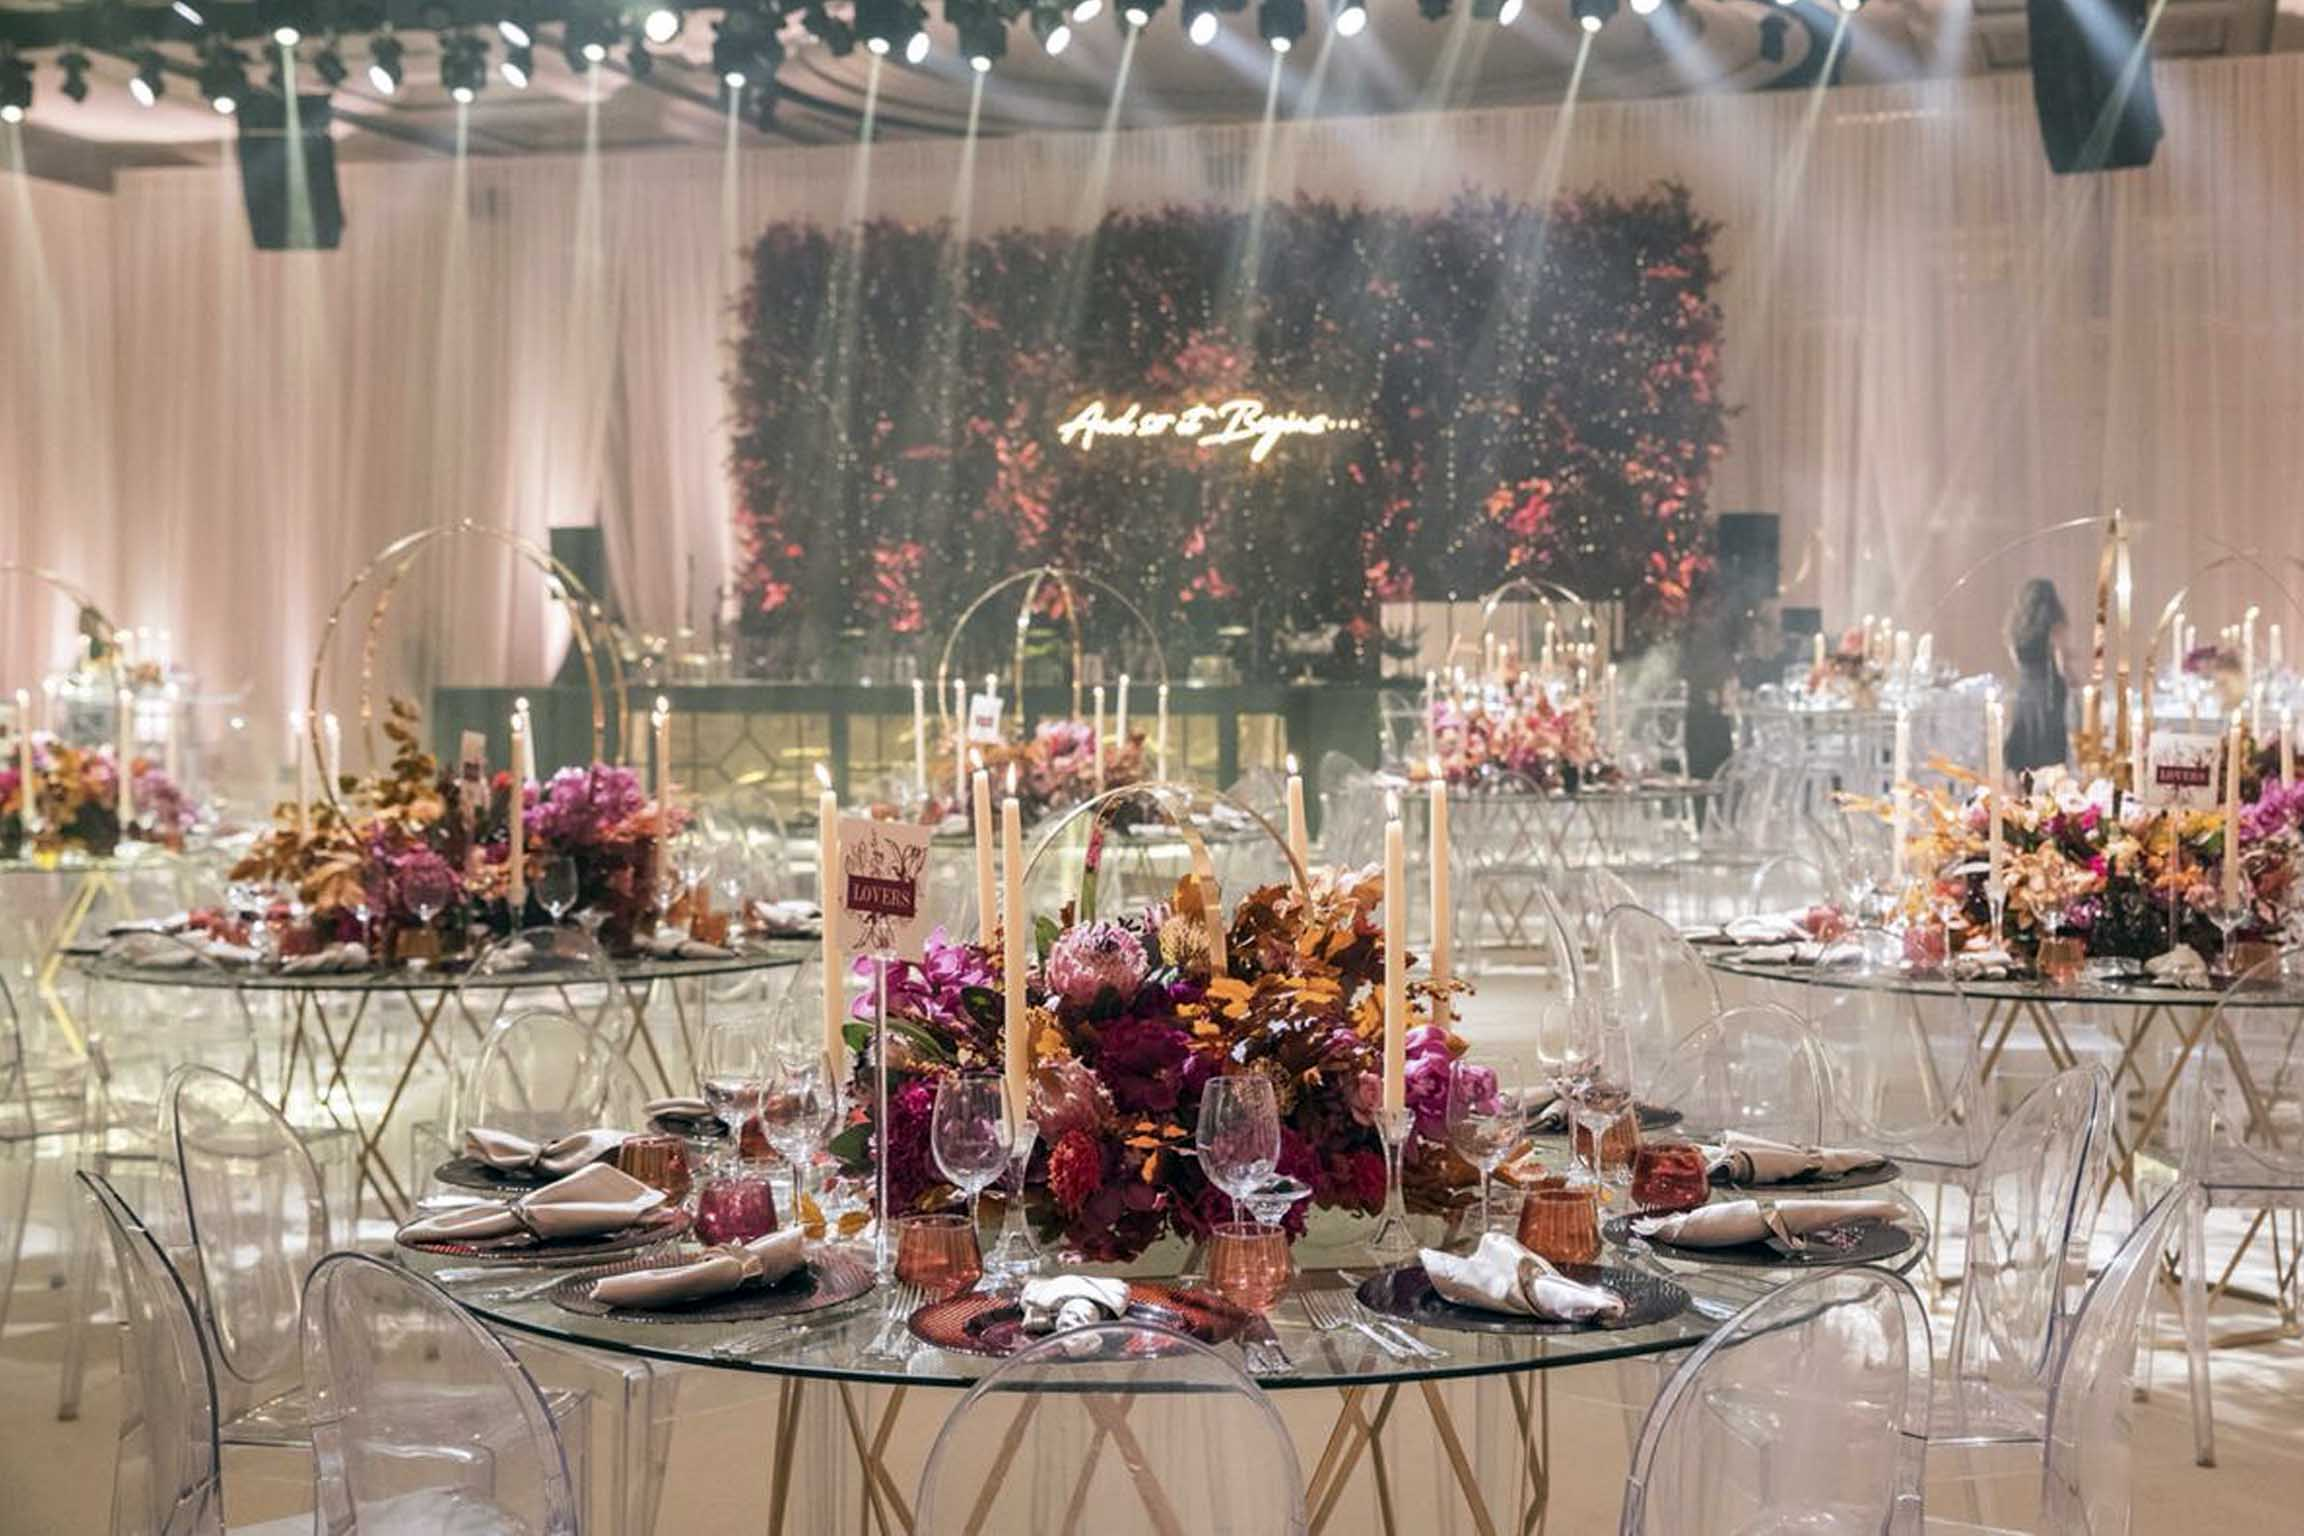 PRIVATE PARTY - DATE: OCTOBER, 2018LOCATION: BEIRUT, LEBANONNUMBER OF GUESTS: 250